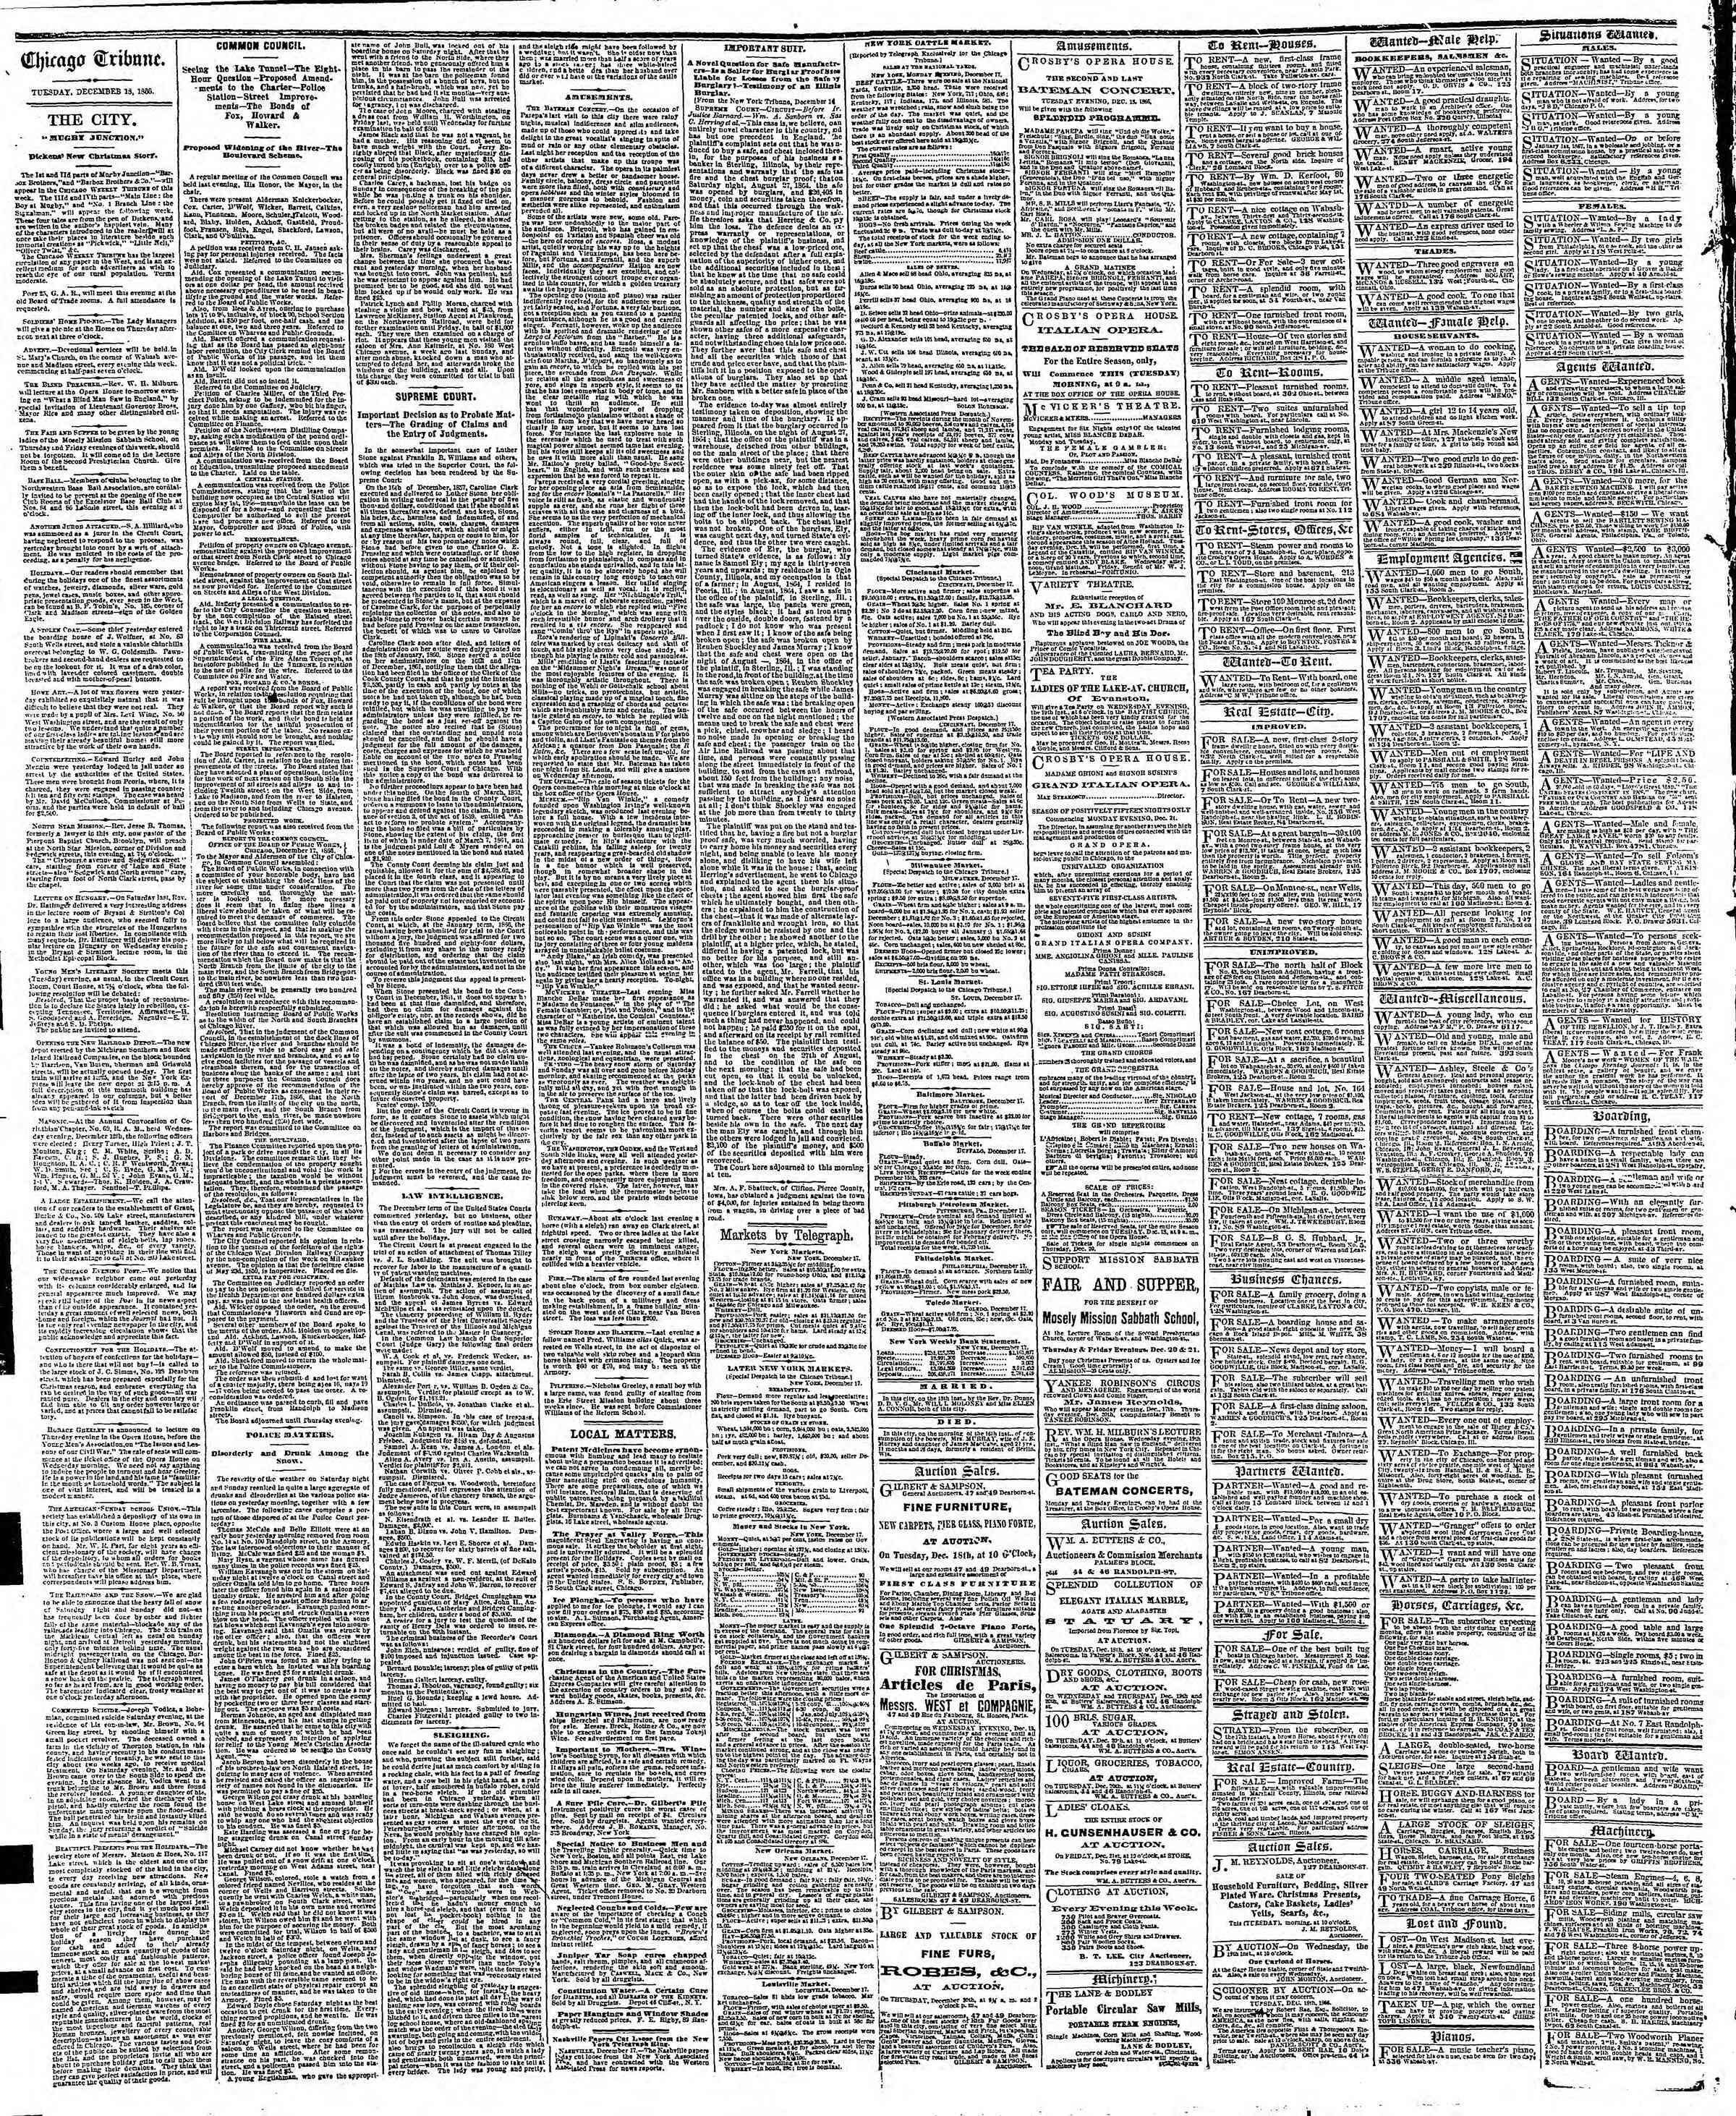 Newspaper of The Chicago Tribune dated December 18, 1866 Page 4